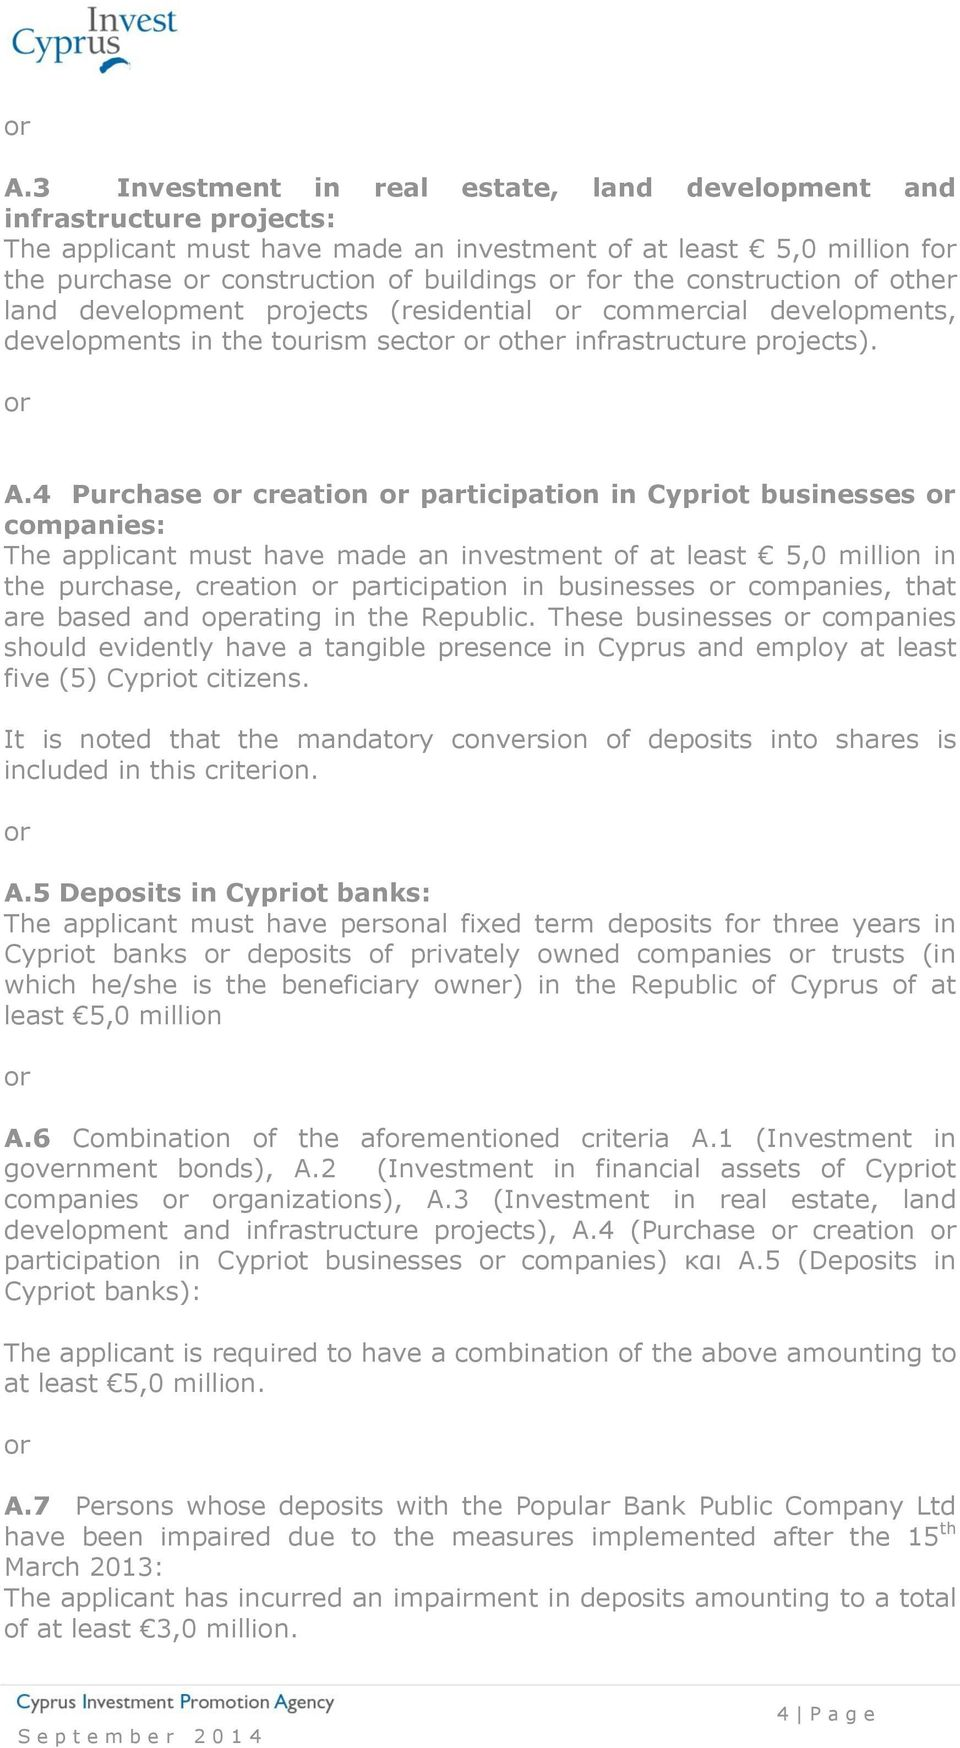 4 Purchase or creation or participation in Cypriot businesses or companies: The applicant must have made an investment of at least 5,0 million in the purchase, creation or participation in businesses